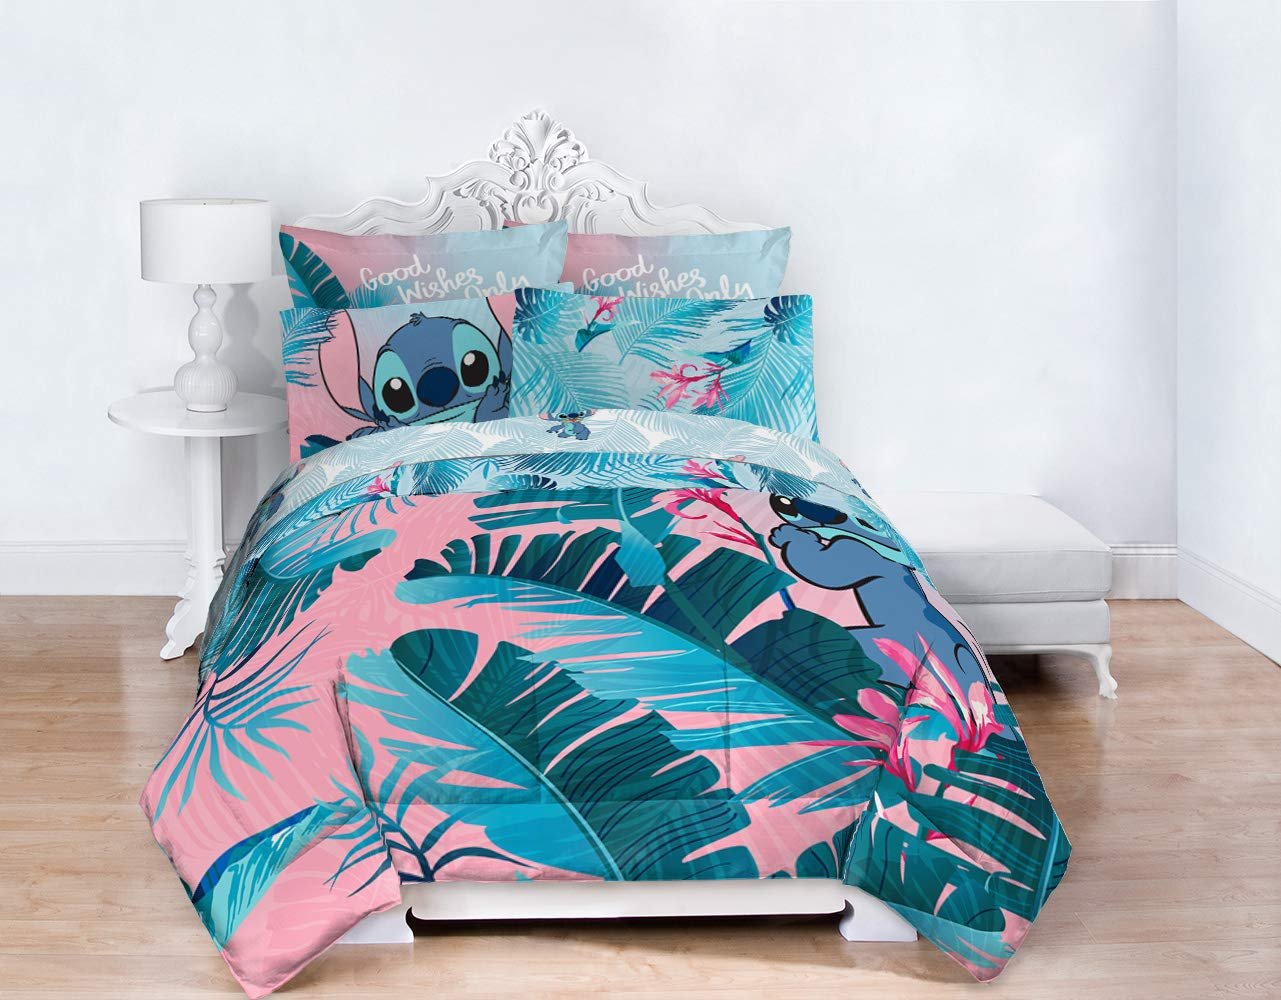 Jay Franco Disney Lilo & Stitch Floral Fun 7 Piece Full Bed Set - Includes Reversible Comforter & Sheet Set Bedding - Super Soft Fade Resistant Microfiber - (Official Disney Product) by Jay Franco (Image #8)